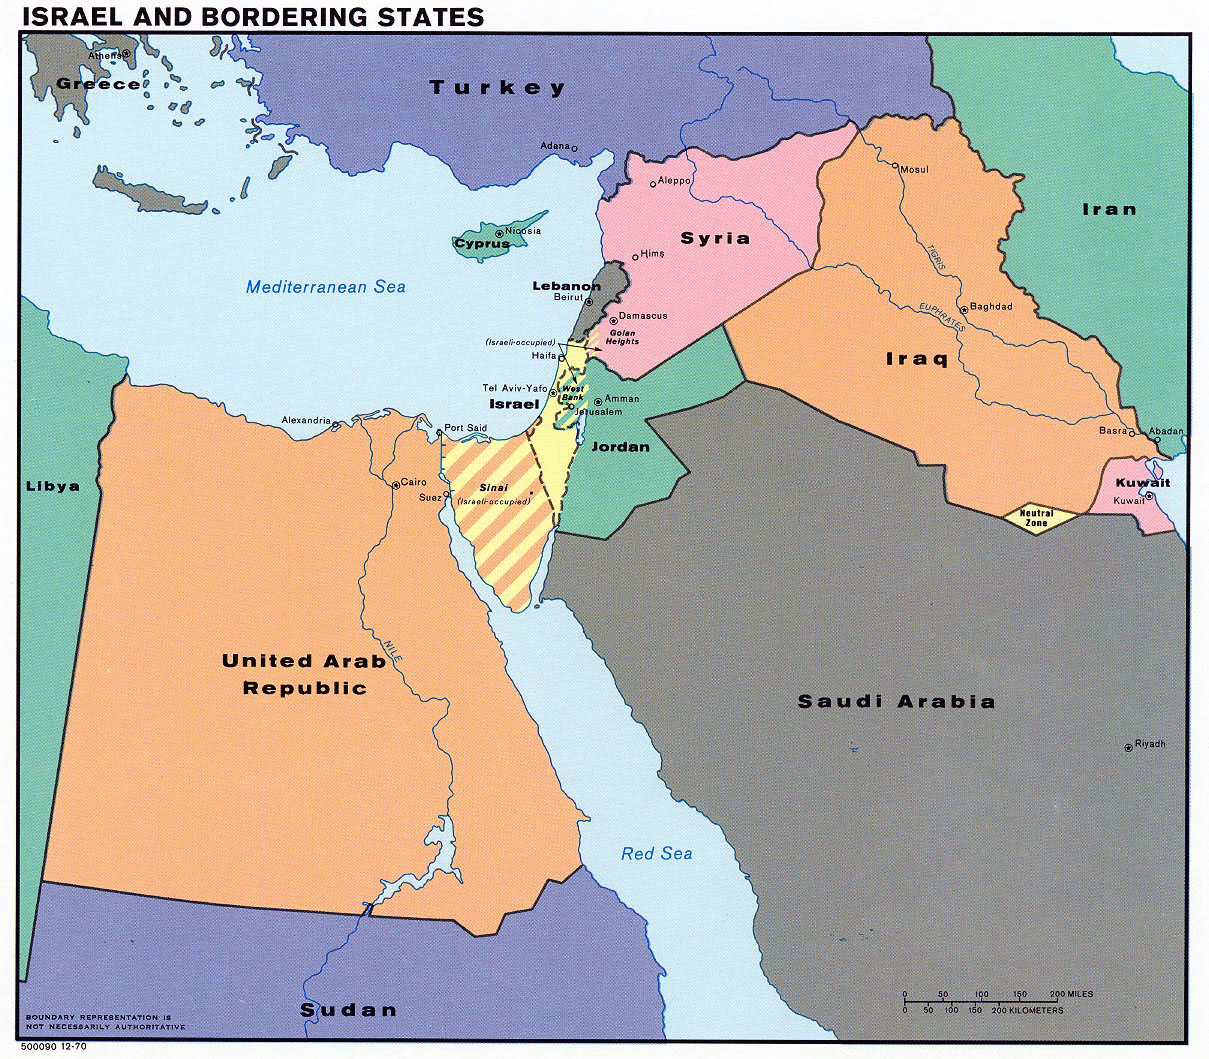 Detailed Map Of Israel And Bordering States 1970 Israel Asia